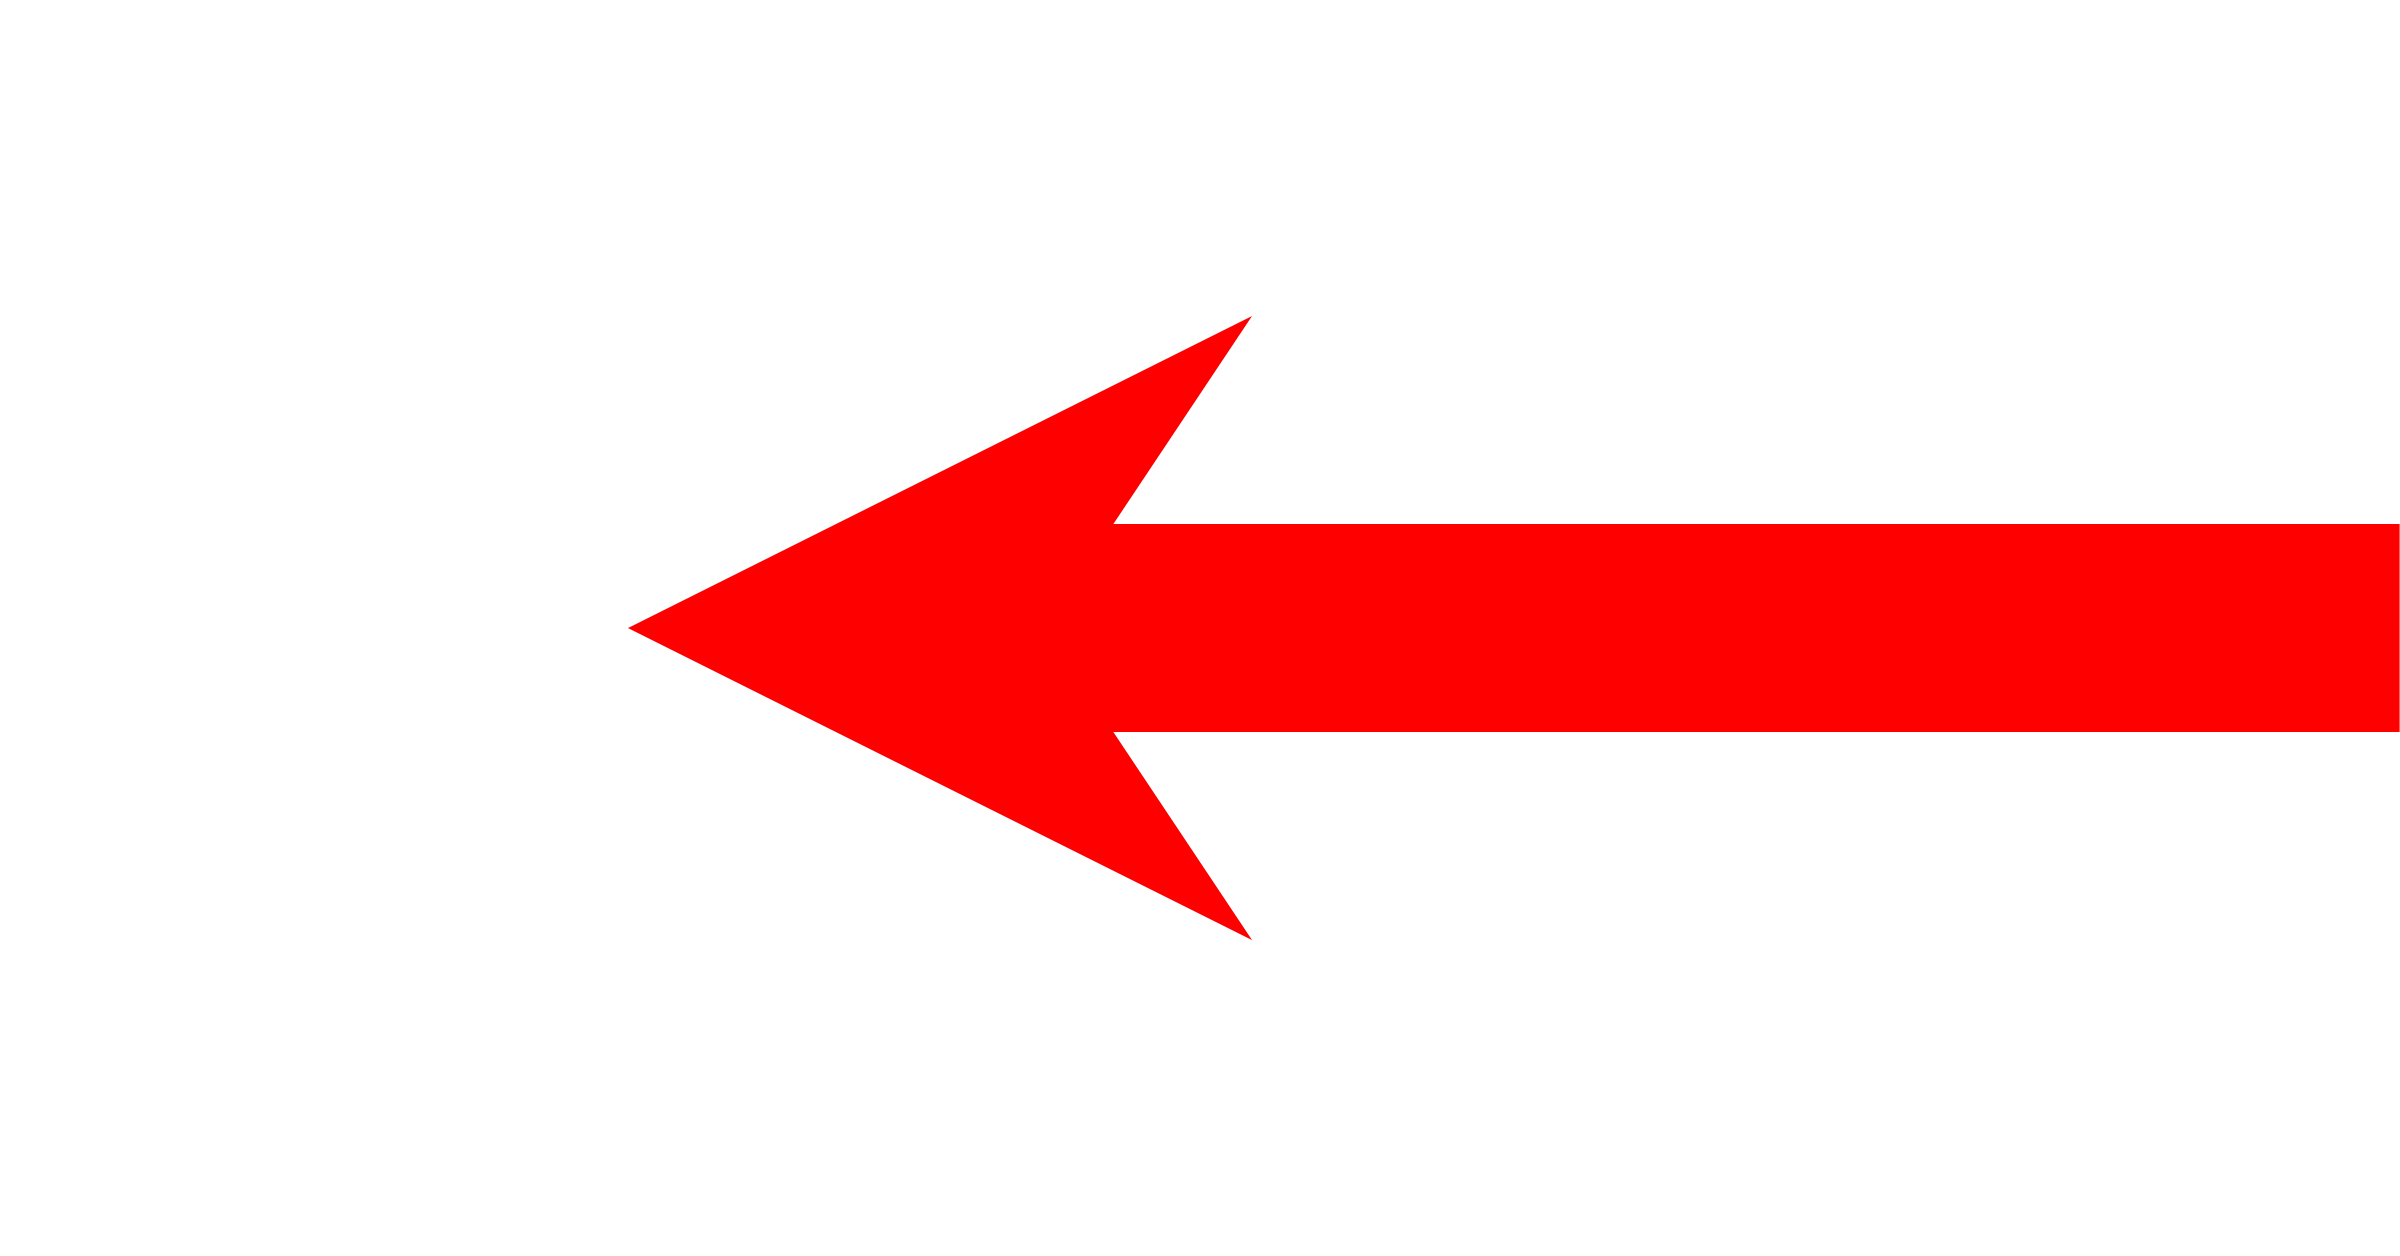 Clipart arrows red. Png arrow transparent images